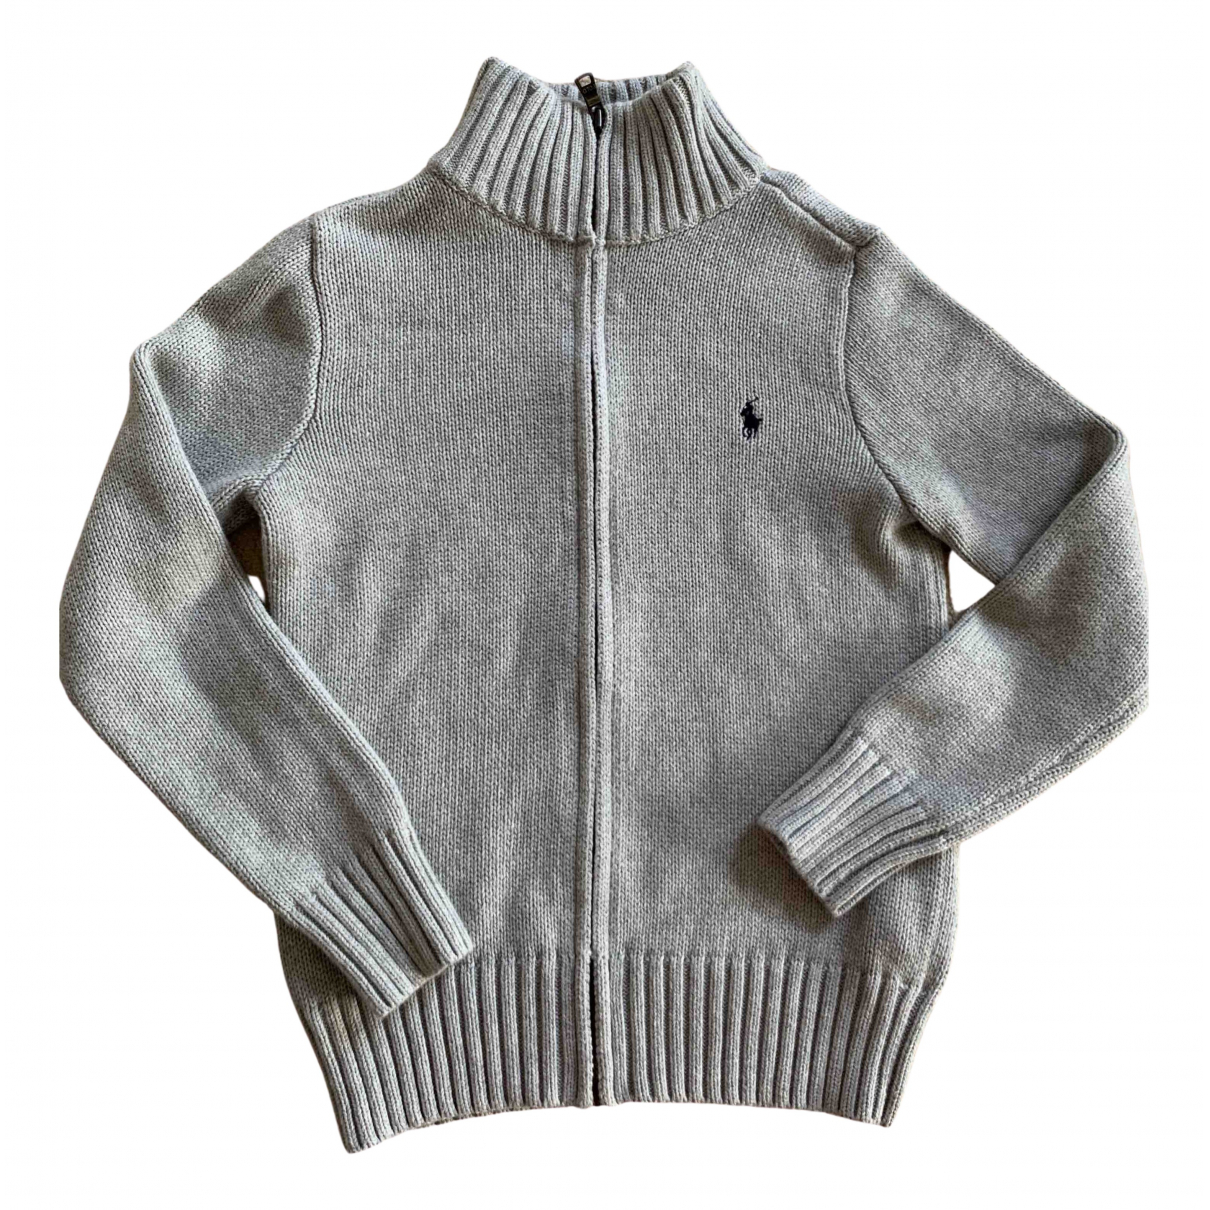 Polo Ralph Lauren N Grey Cotton Knitwear for Kids 8 years - until 50 inches UK